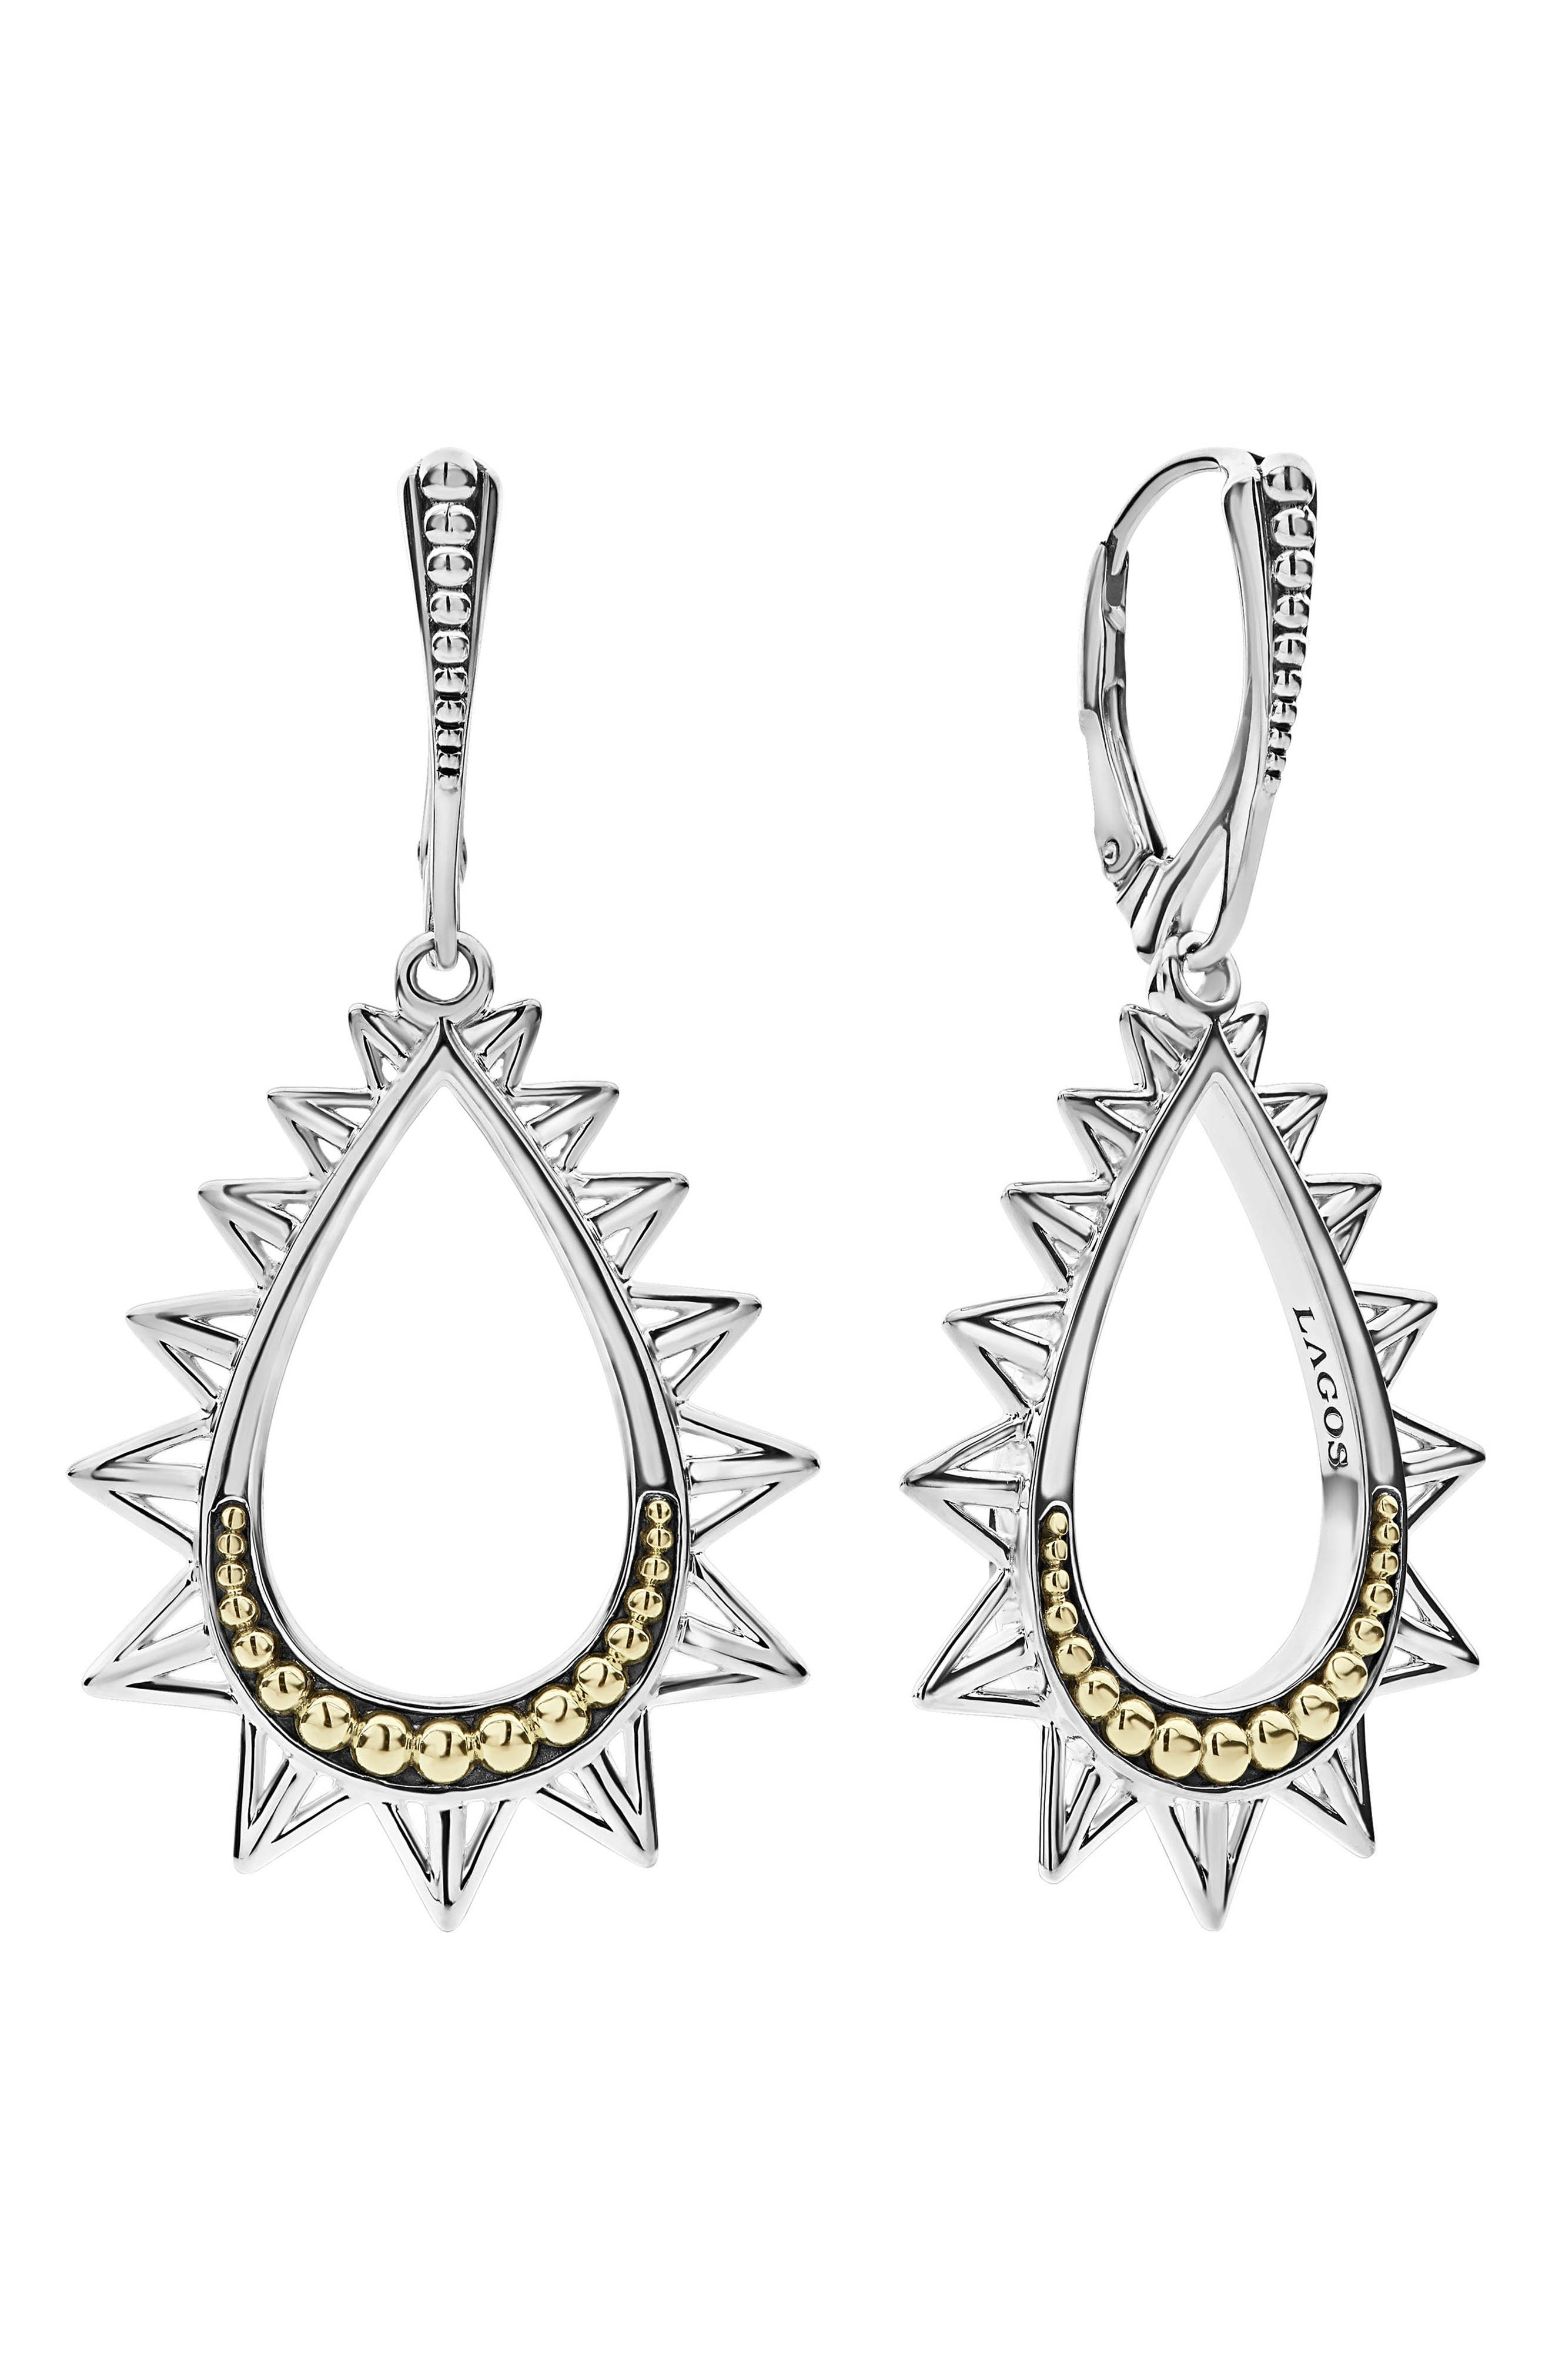 LAGOS 18K Yellow Gold & Sterling Silver Ksl Spiked Pyramid Pear-Shaped Drop Earrings